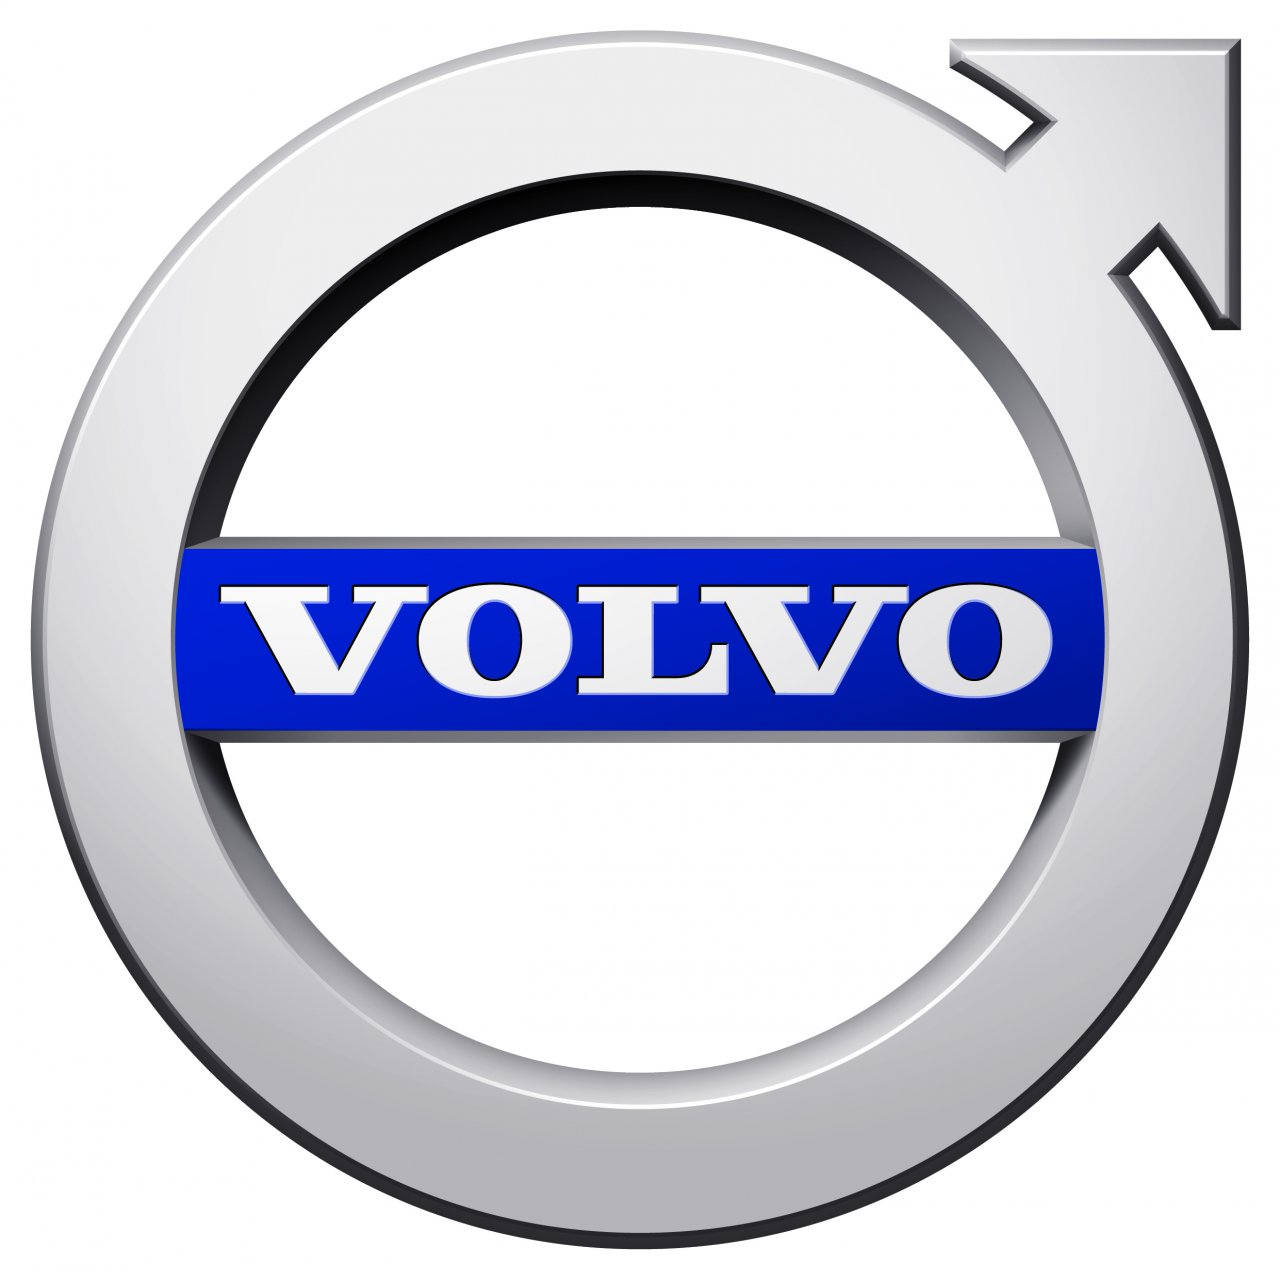 Volvo, Volvo is latest automaker to flatten its logo, ClassicCars.com Journal